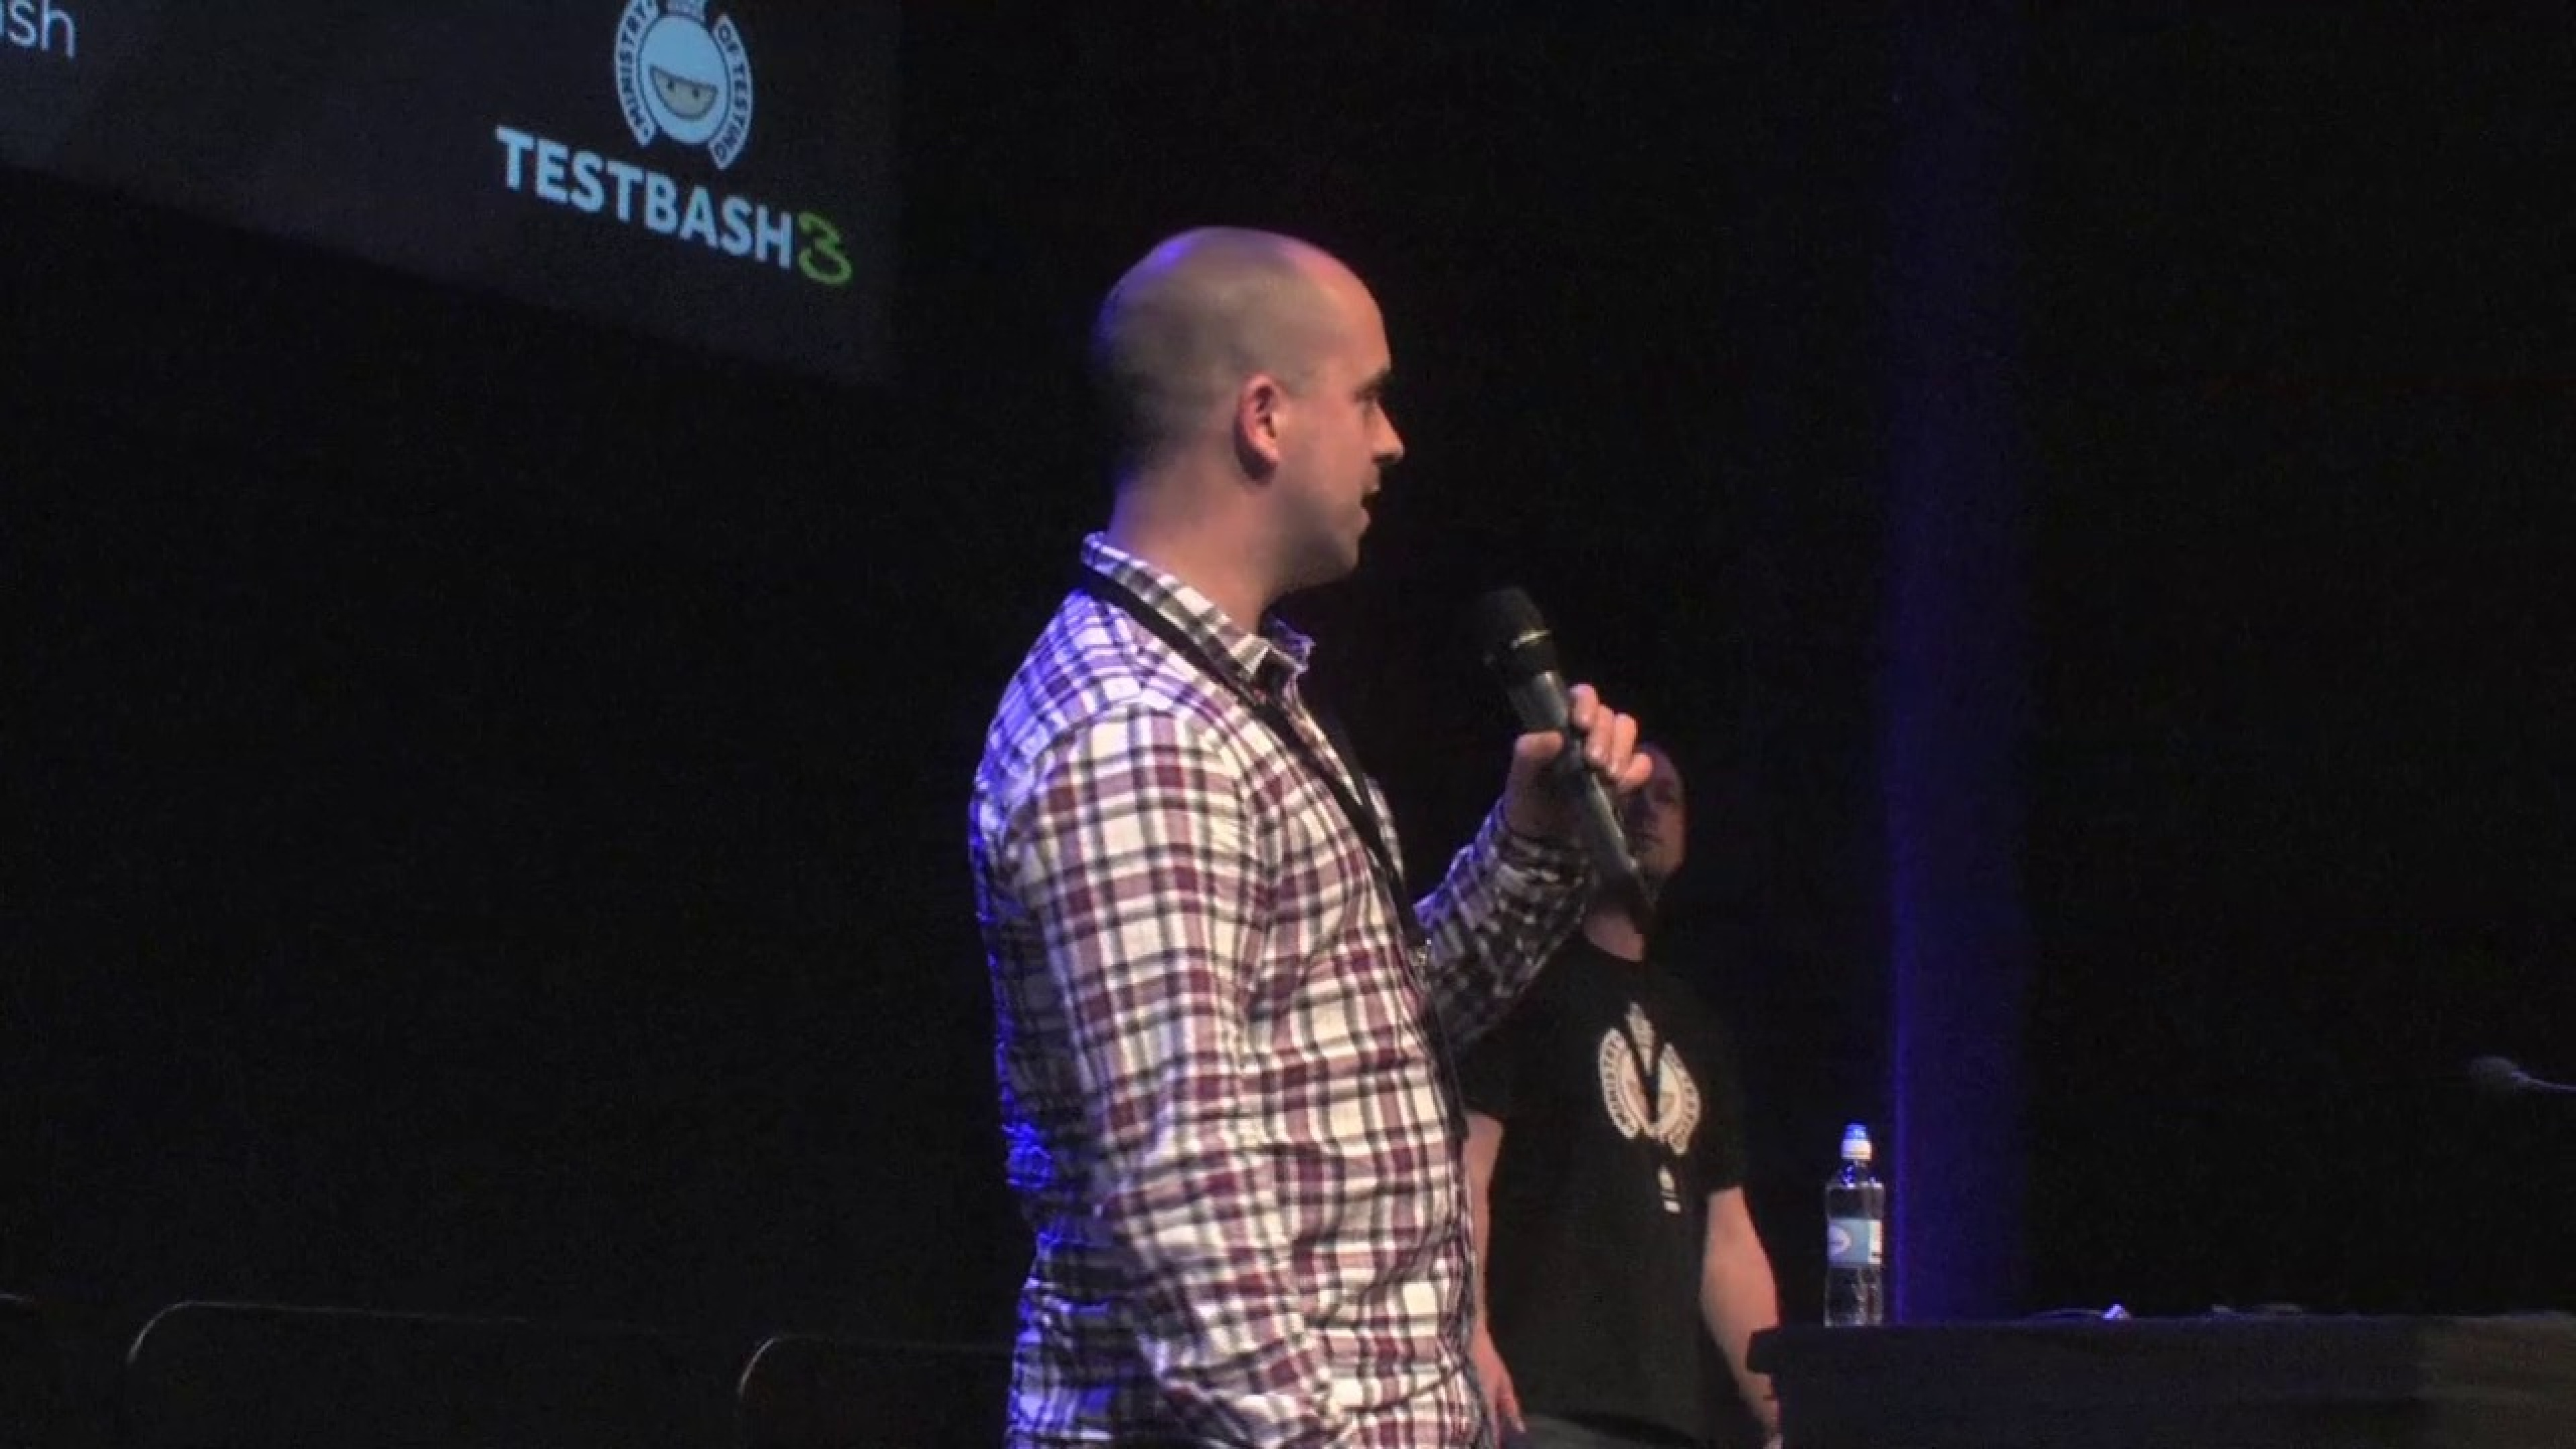 TestBash 2014 - Bits Of Bash - Ministry of Testing